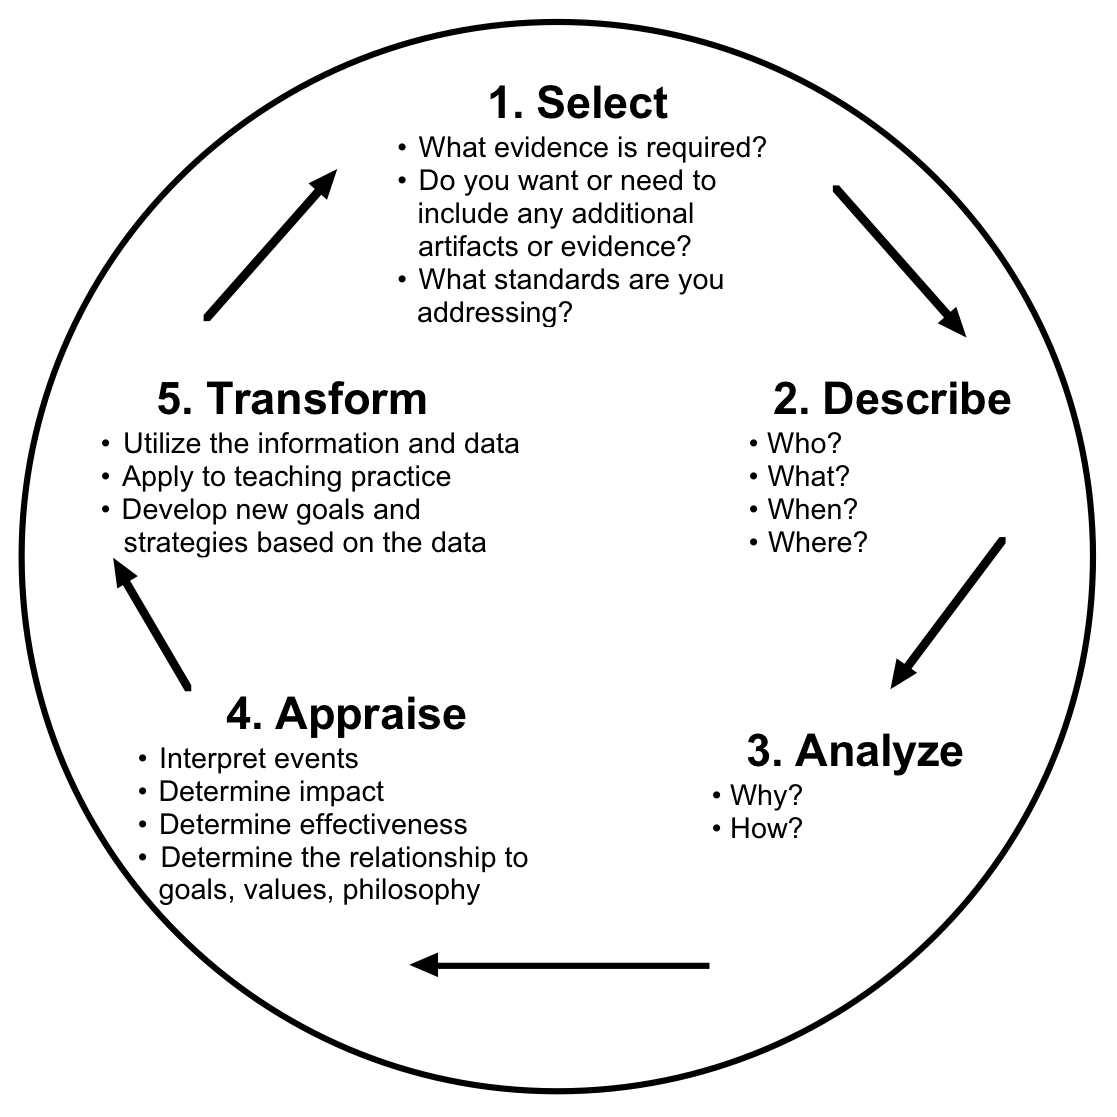 following johns model of structured reflection Reflective practice is a process associated with professional learning,  john's model of structured reflection (msr) (2006) was designed for health practitioners.